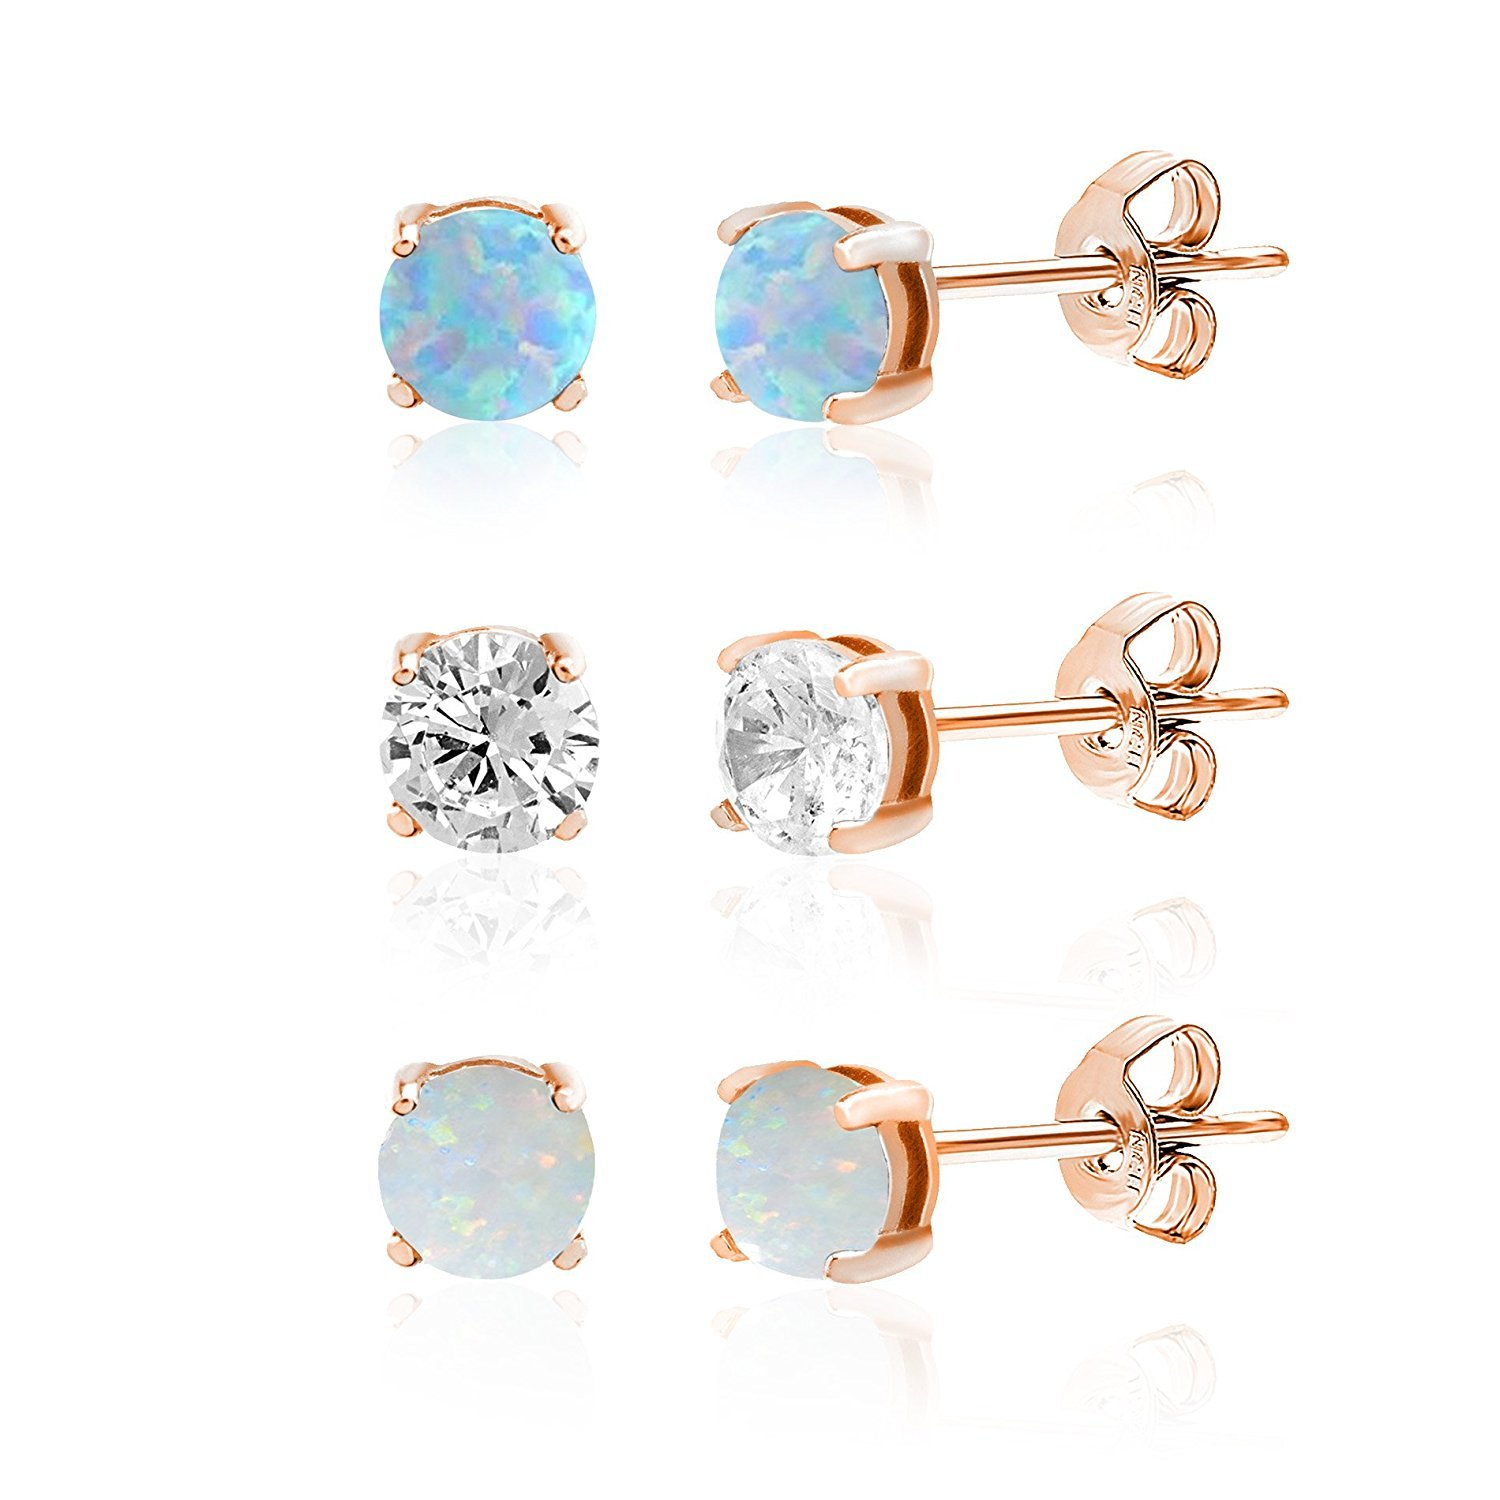 LESA MICHELE Rose Gold Plated Sterling Silver Lab Created Opal and Cubic Zirconia 3 pair Stud Earring Set for Women